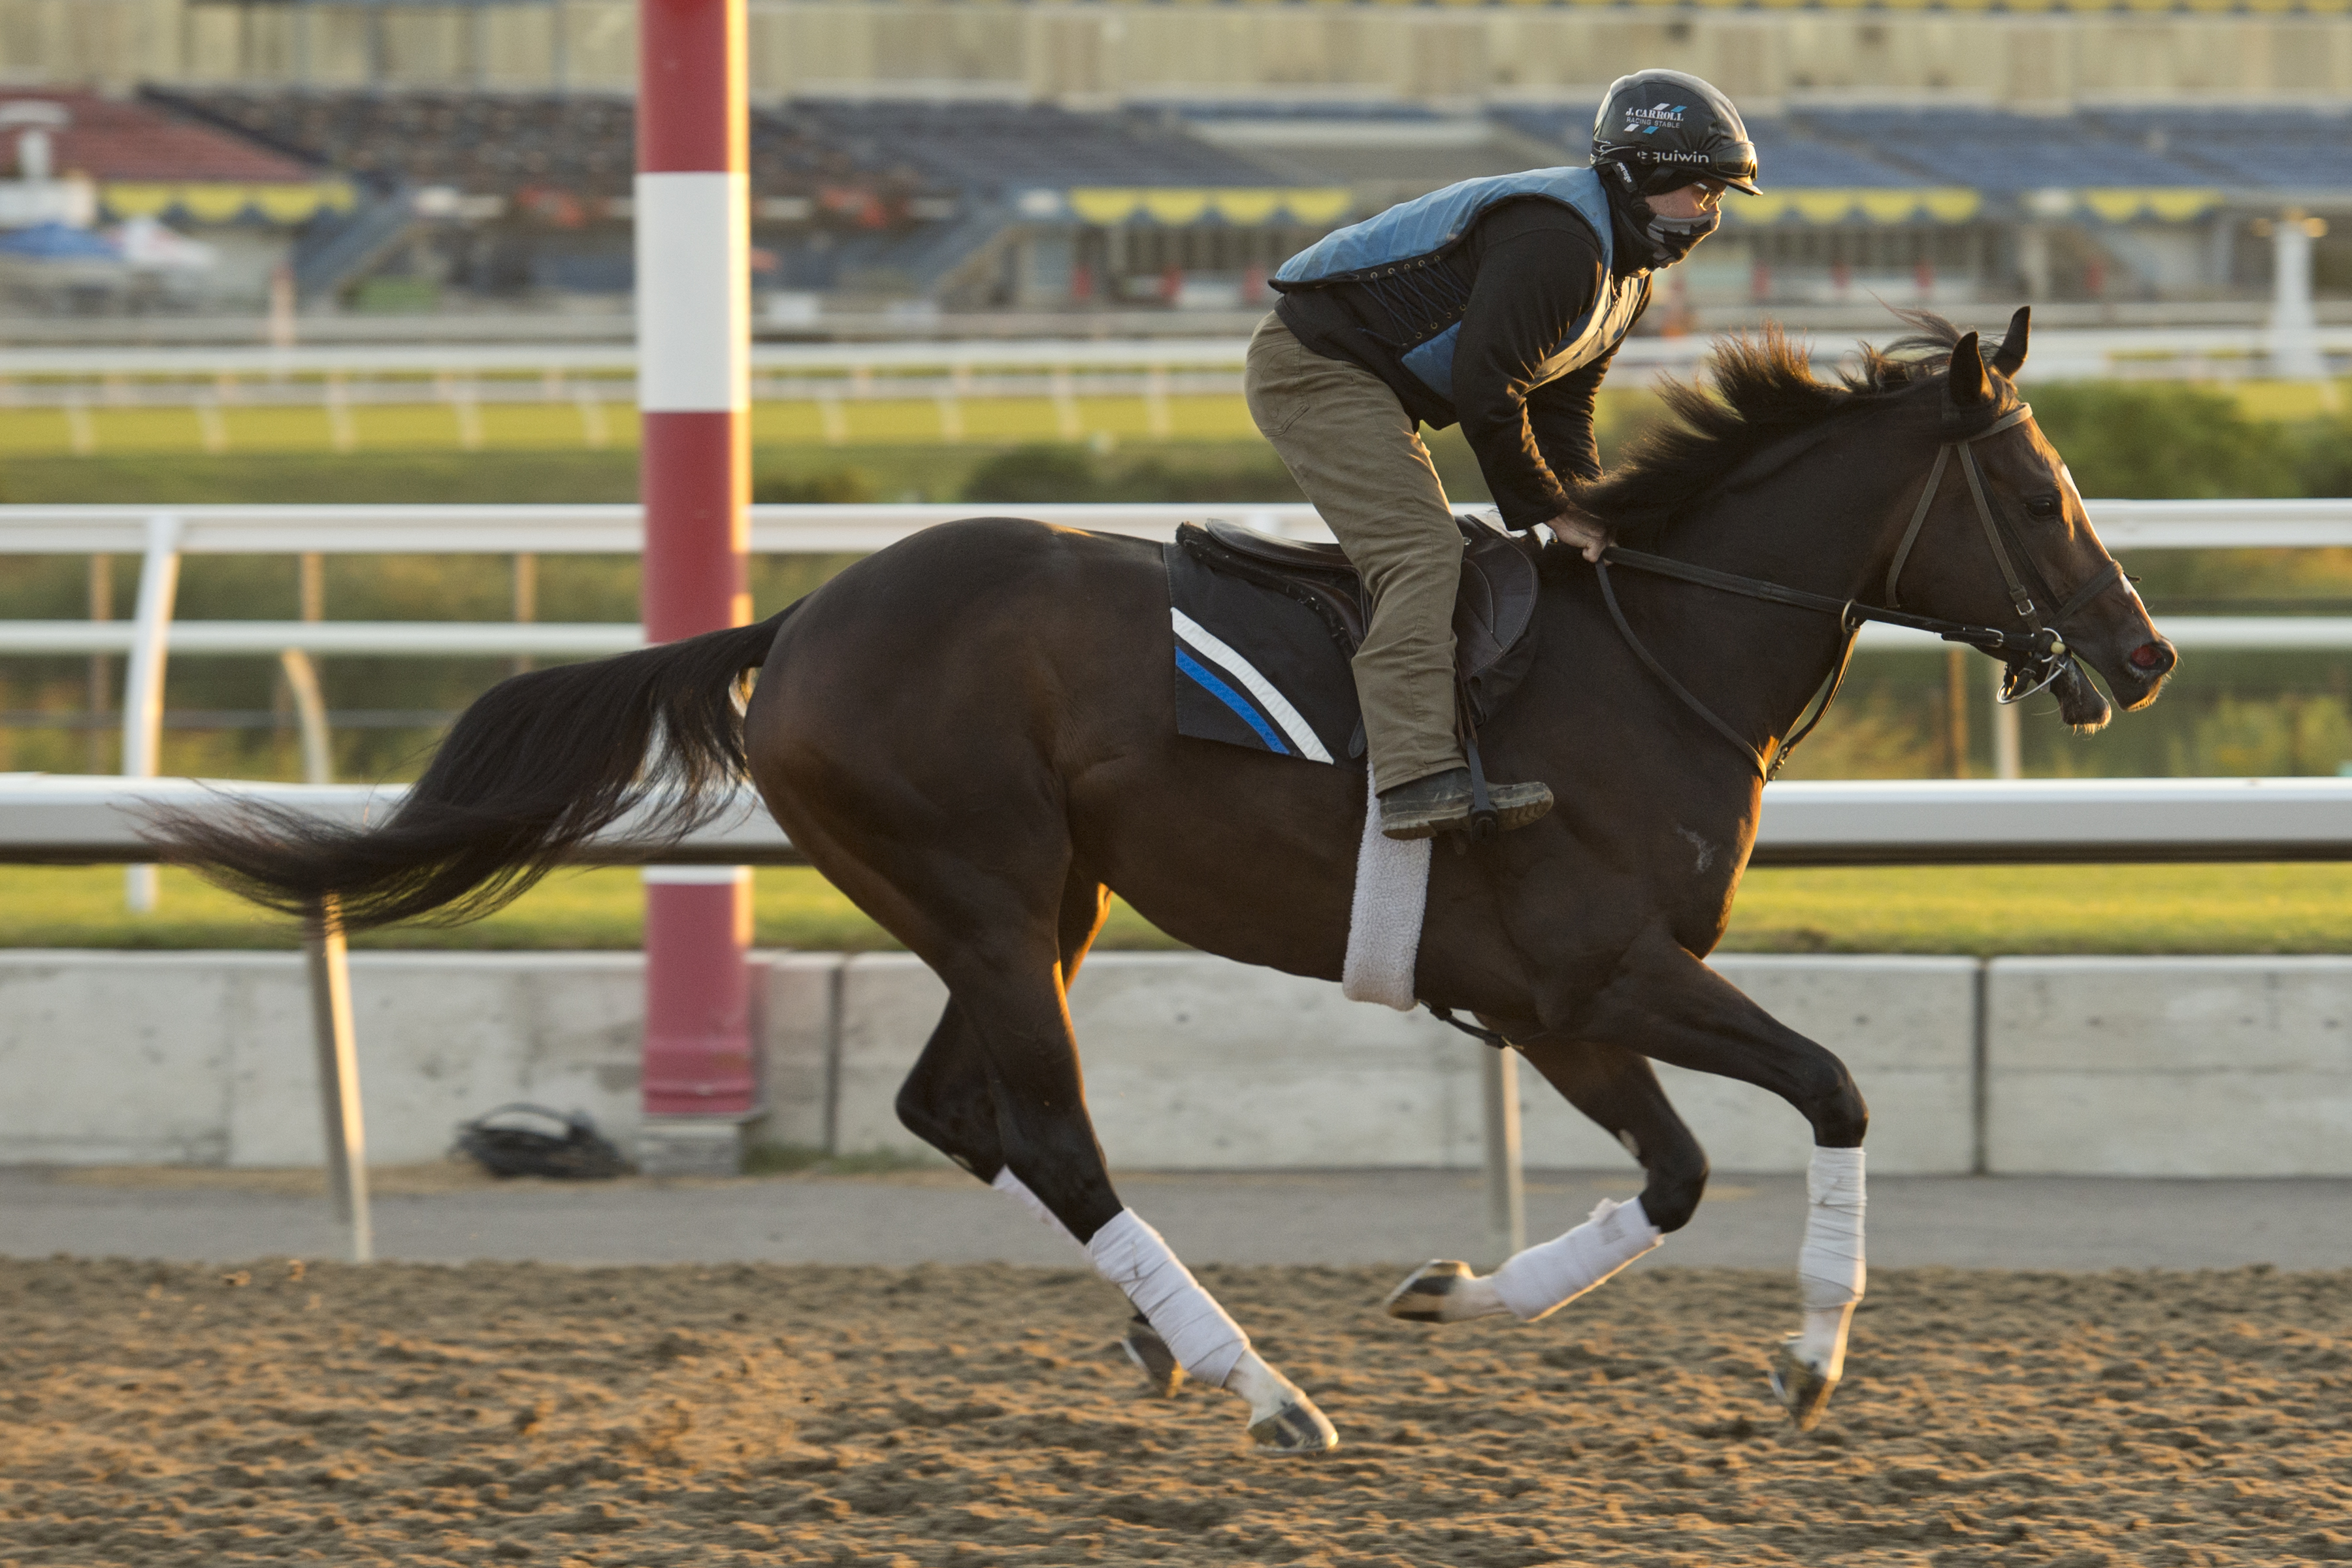 Field of nine set for 85th Prince of Wales Stakes / Mighty Heart continues quest for OLG Canadian Triple Crown